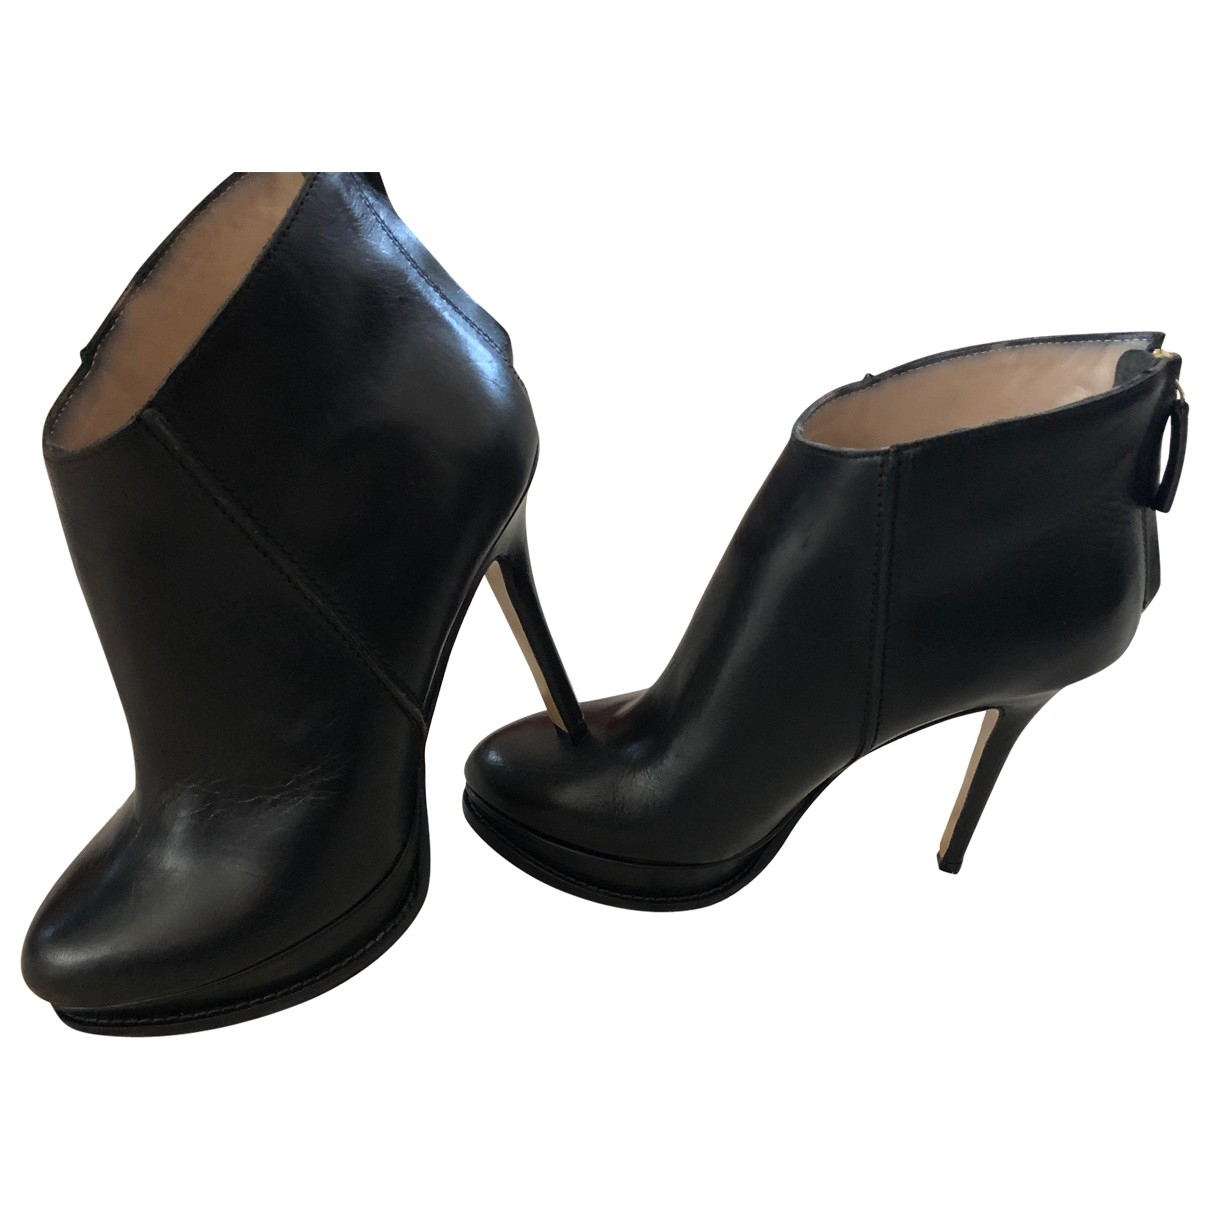 Max & Co \N Black Leather Ankle boots for Women 37 EU